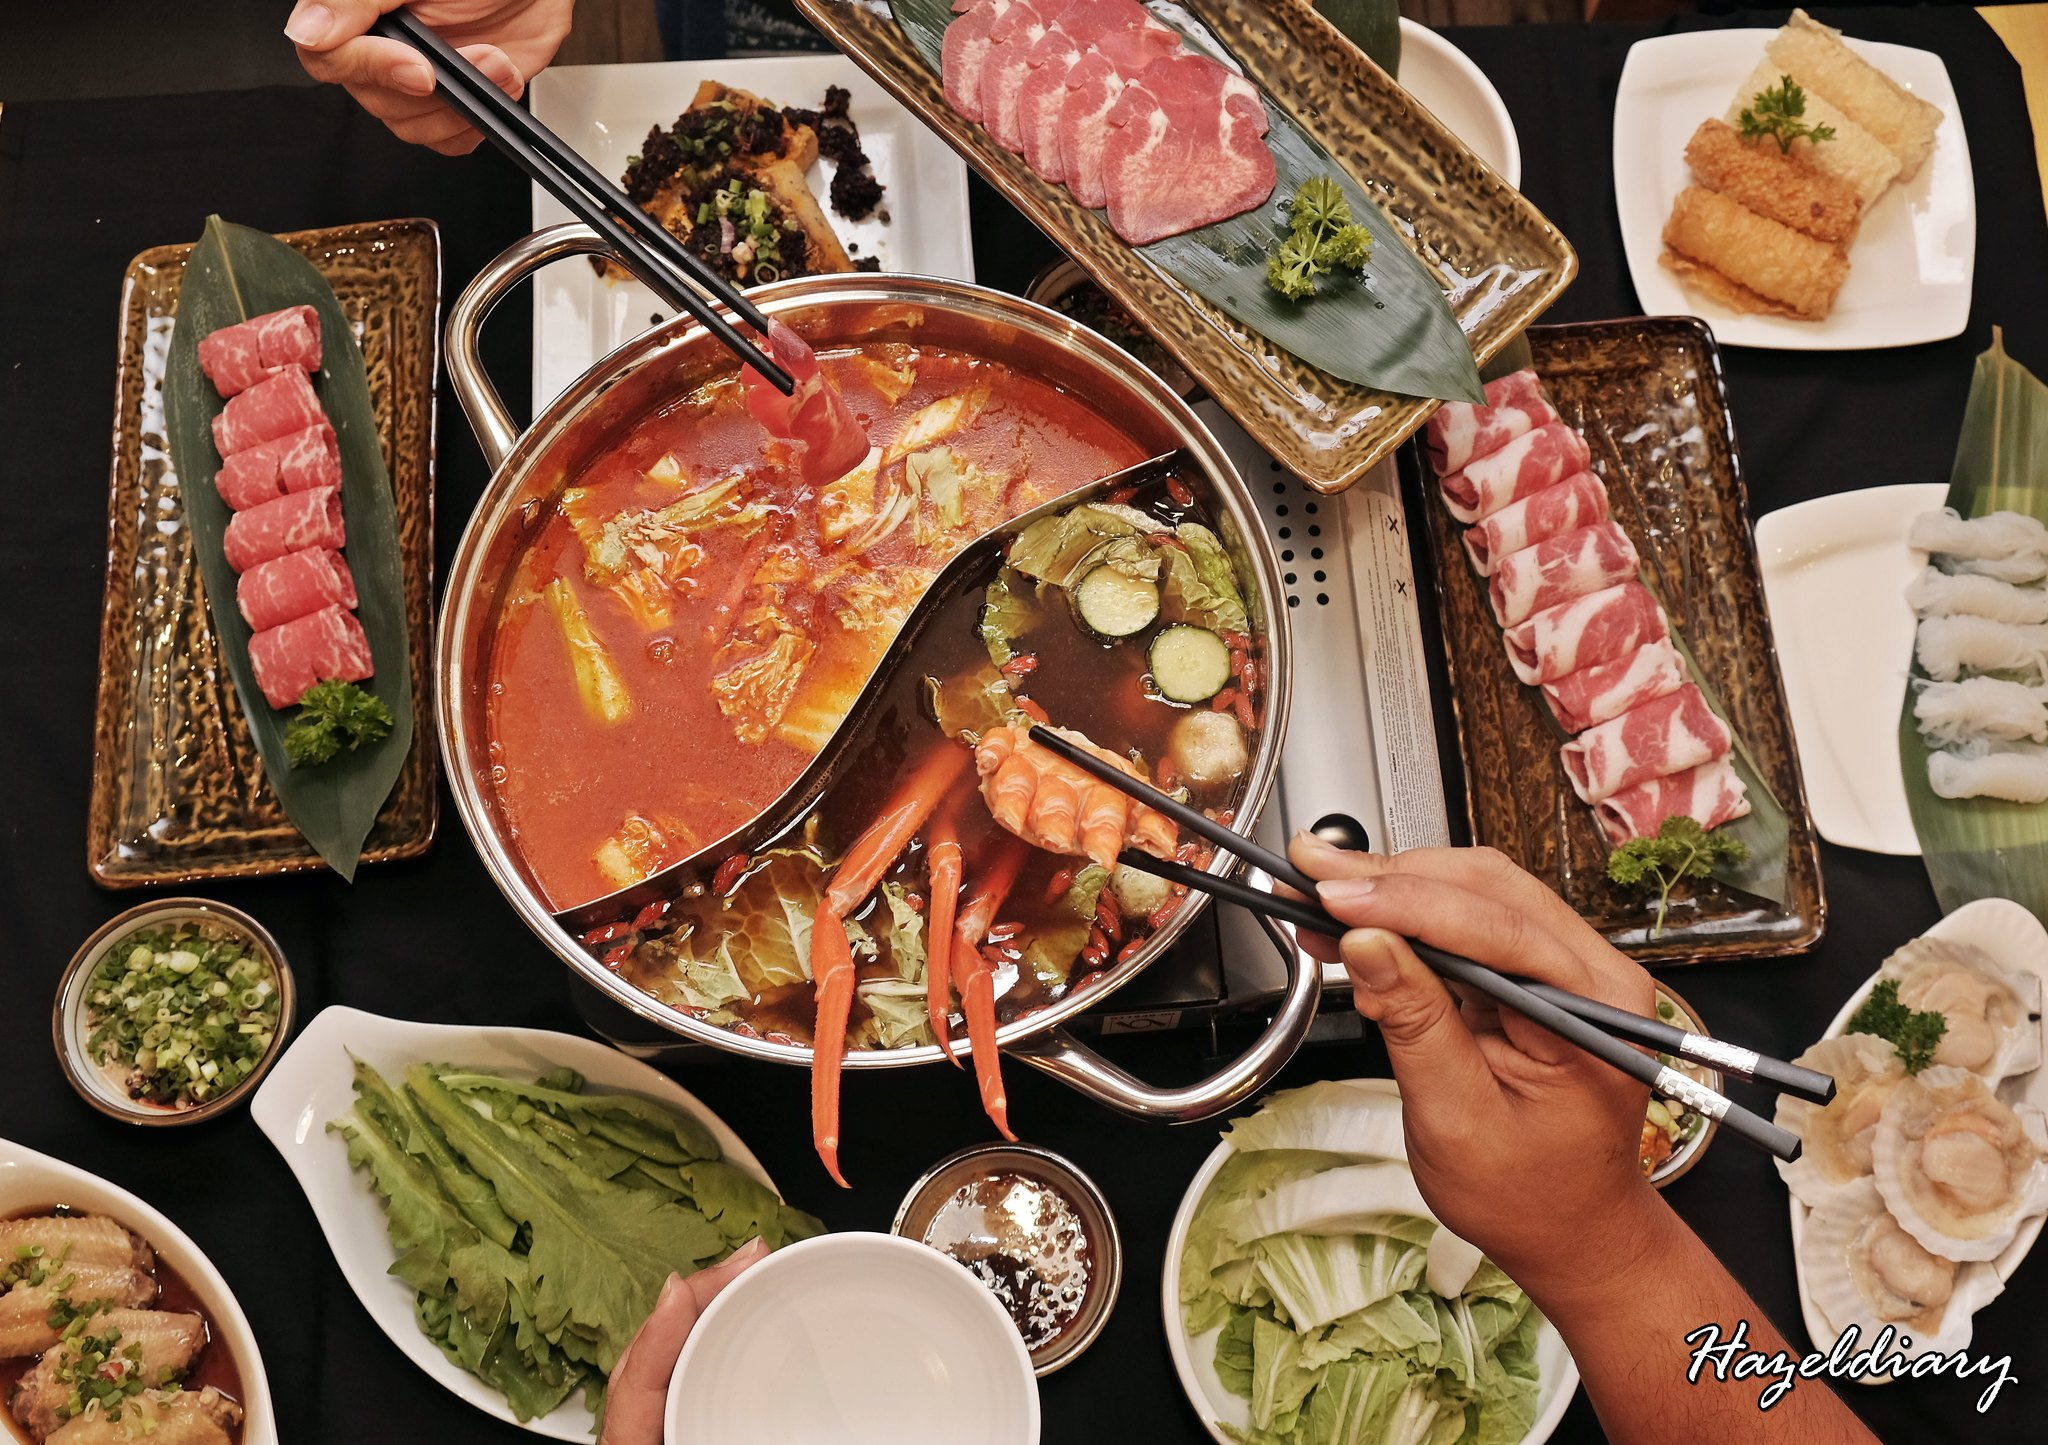 [SG EATS] Ding Xian Hotpot- First-Ever Hotpot Restaurant To Offer Japanese Spicy Miso Soup and Traditional Sichuan Mala Soup Under One Roof